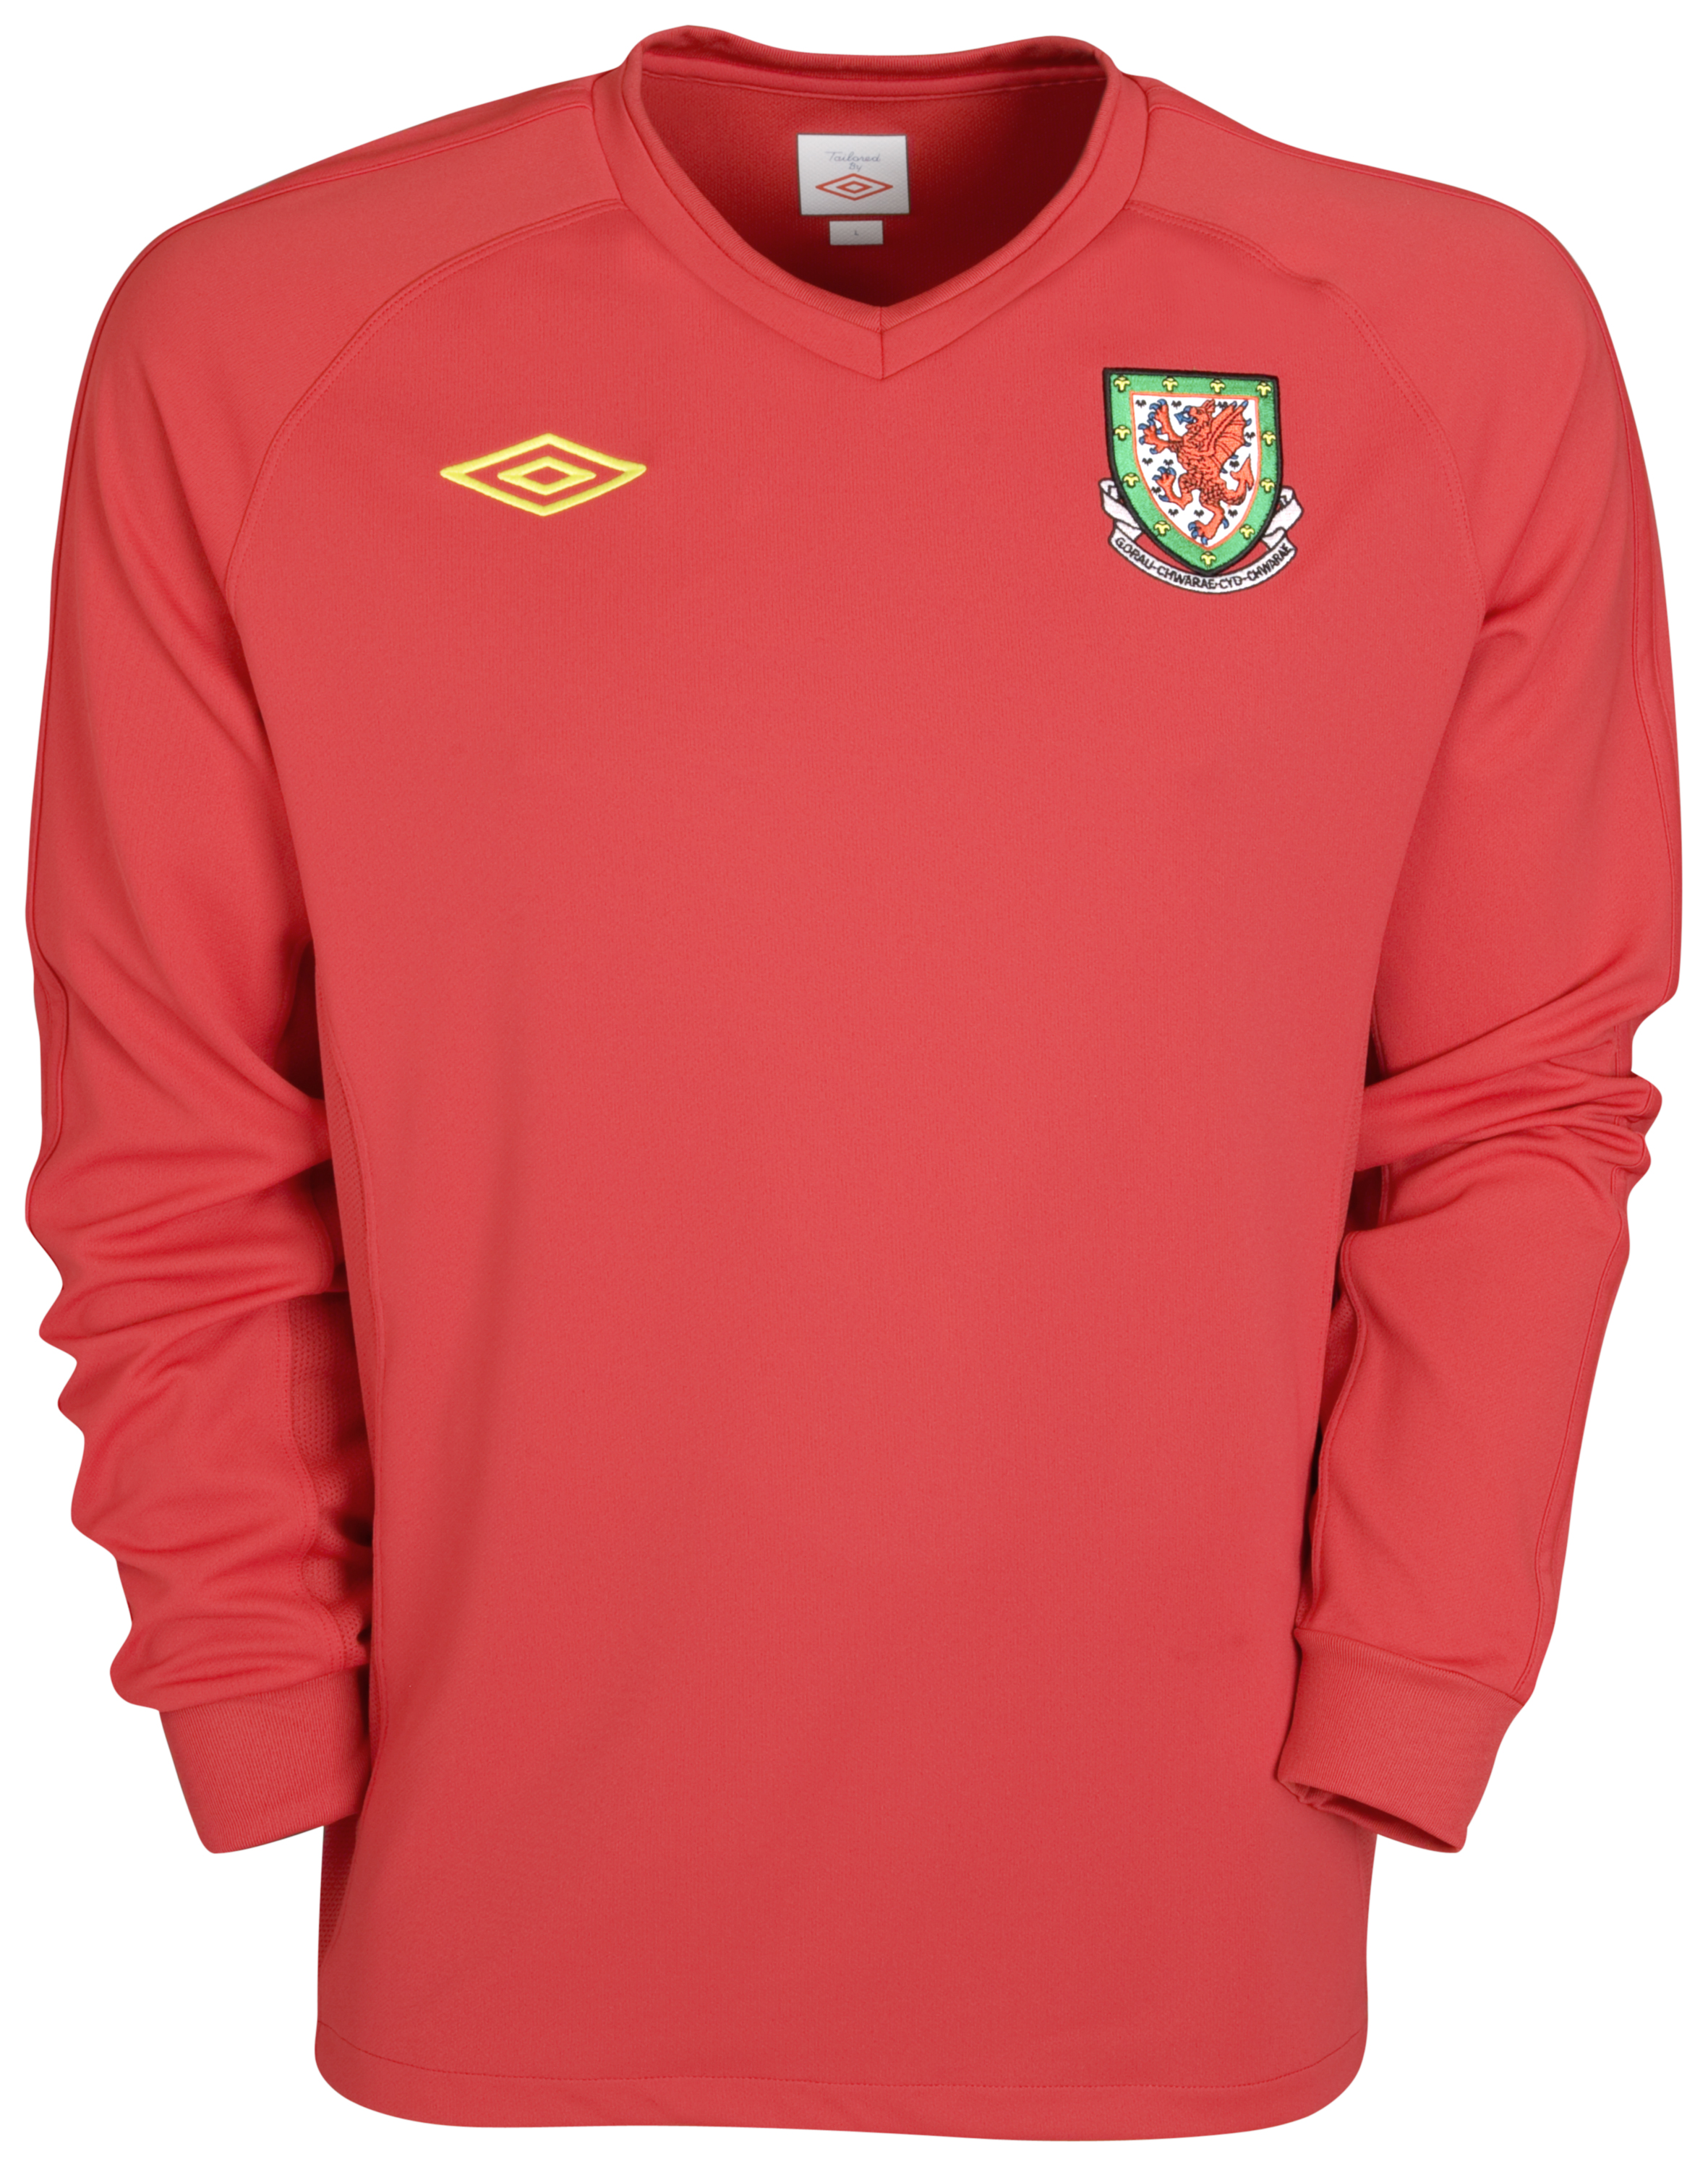 Wales Home Shirt 2010/11 - Long Sleeved. for 30€